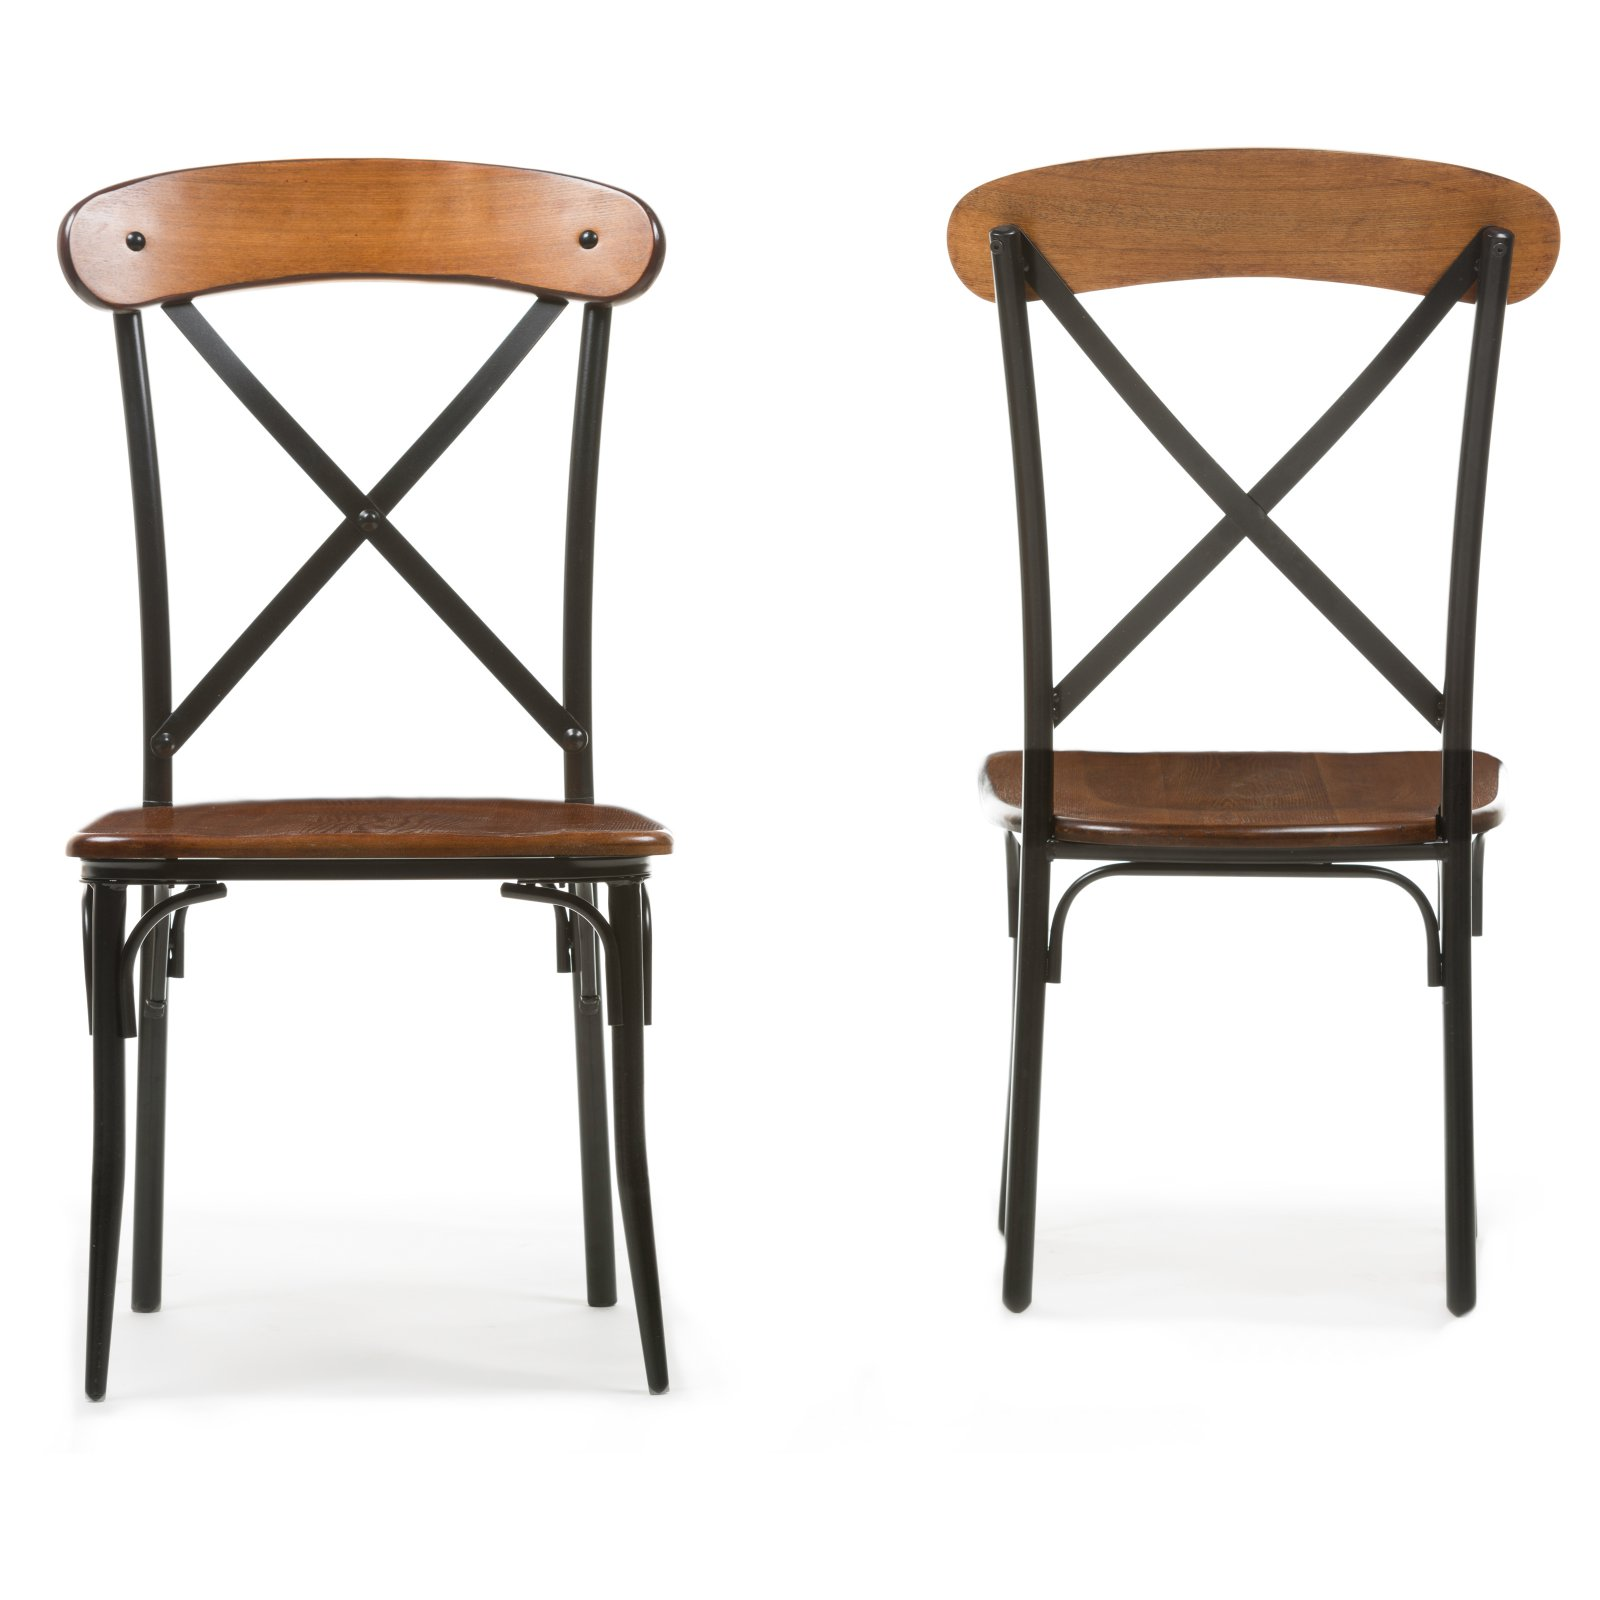 Baxton Studio Broxburn Dining Chair   Set Of 2